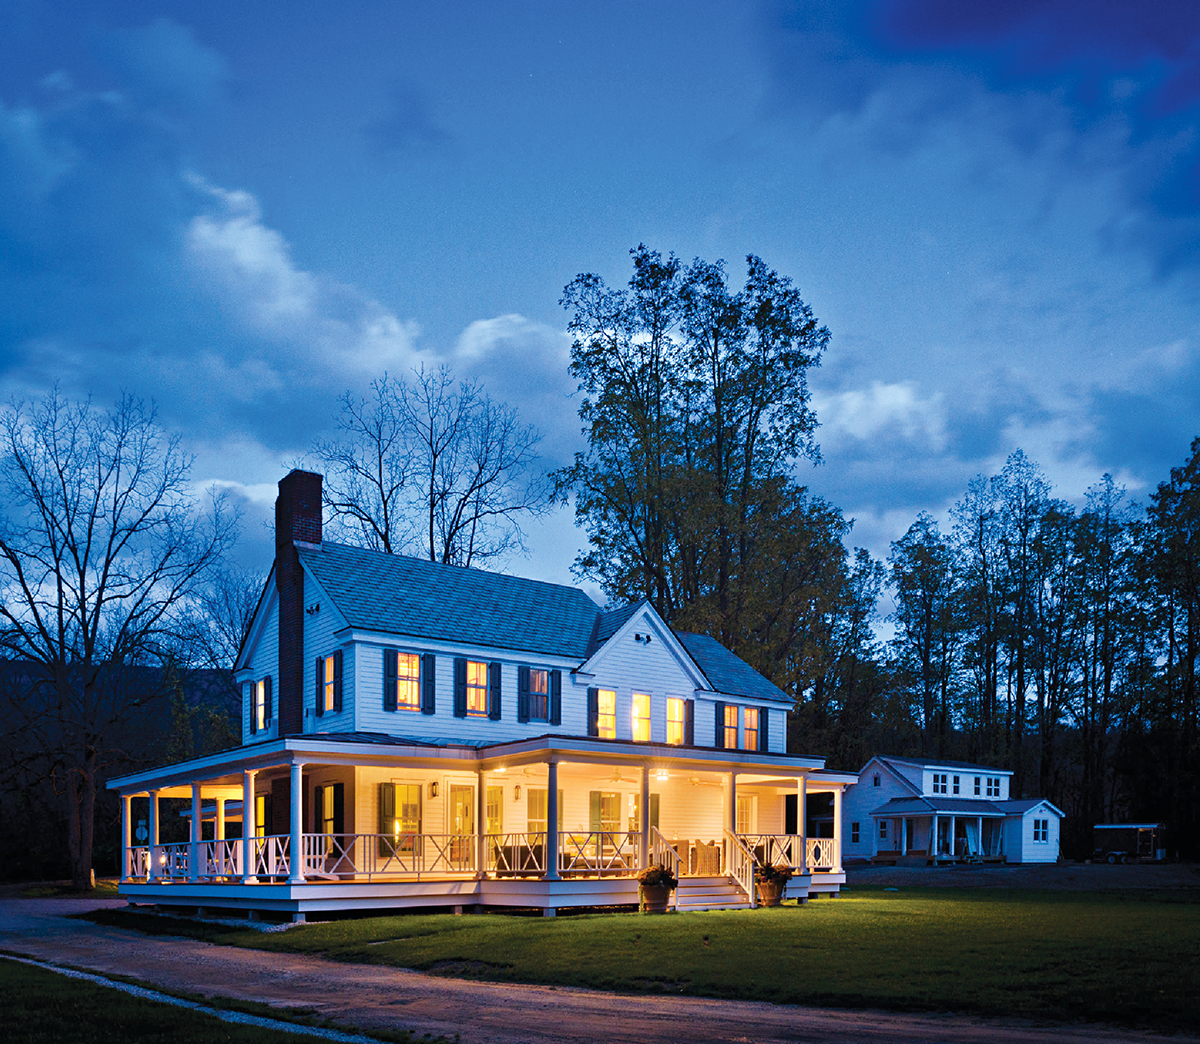 Unique Wedding Venues In Manchester: Wedding Venues In Manchester, Vermont